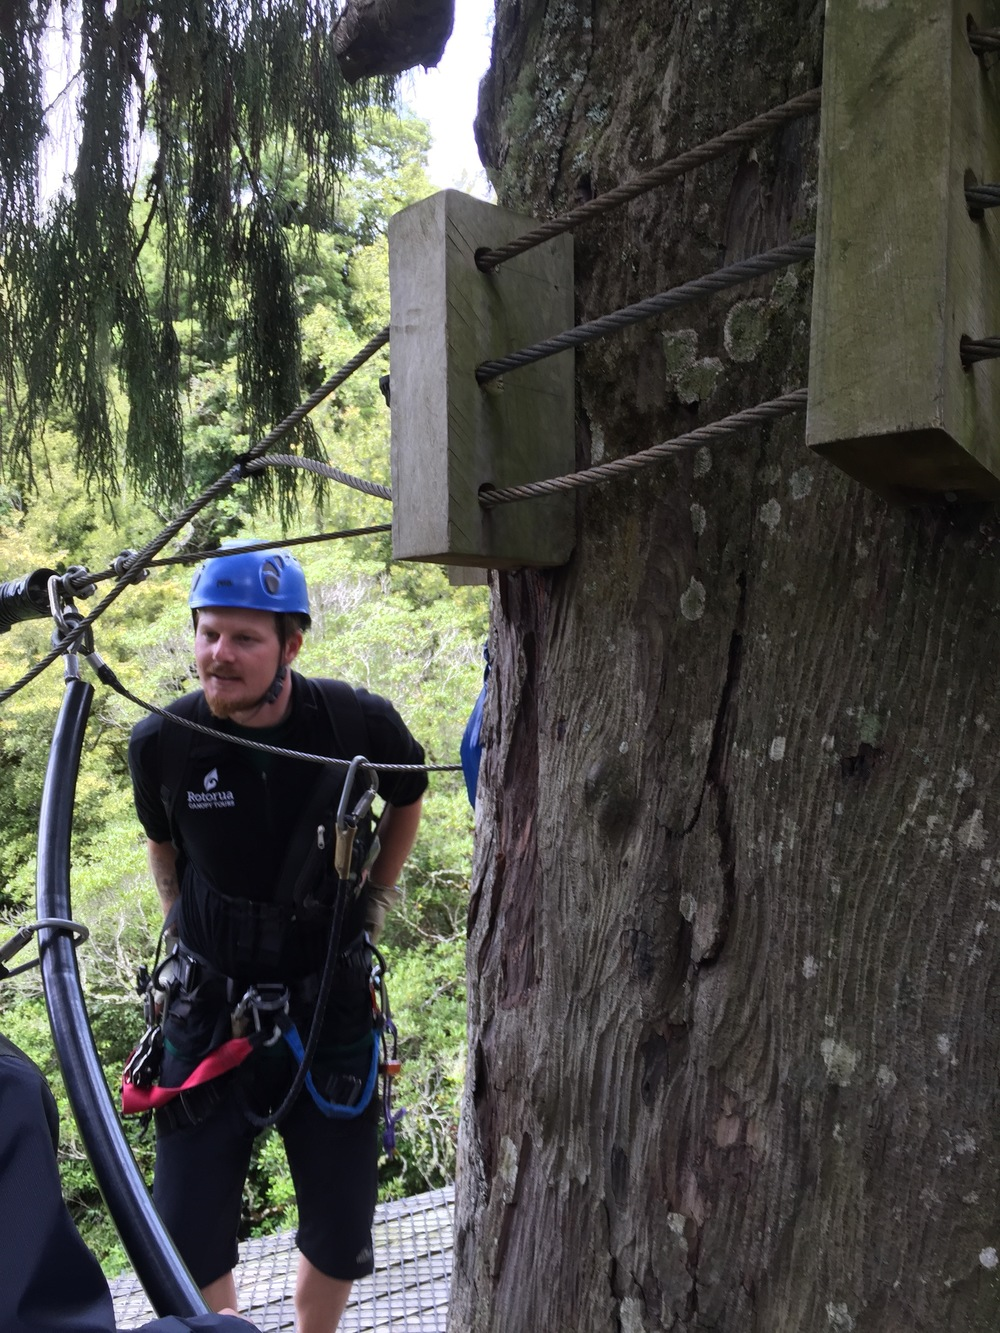 Scott, one of our zipline guides with Rotorua Canopy Tours, stands on a platform constructed 100 feet up around an old-growth kauri tree in Dansey Forest, near Rotorua.